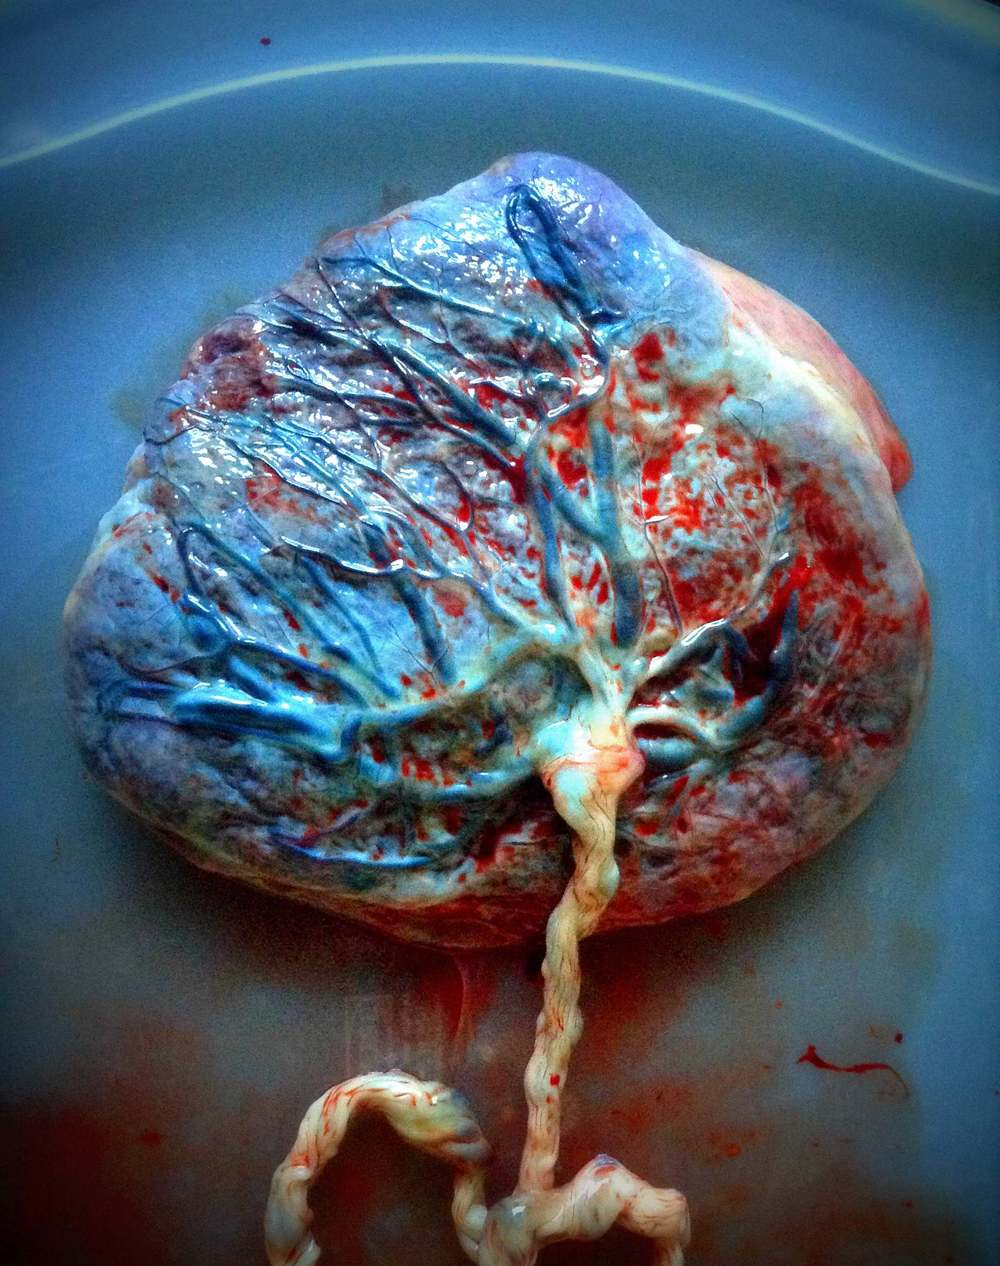 Placenta Photography:  typical photos provided are of the placenta's fetal side, the maternal side, and any other interesting angles or features.